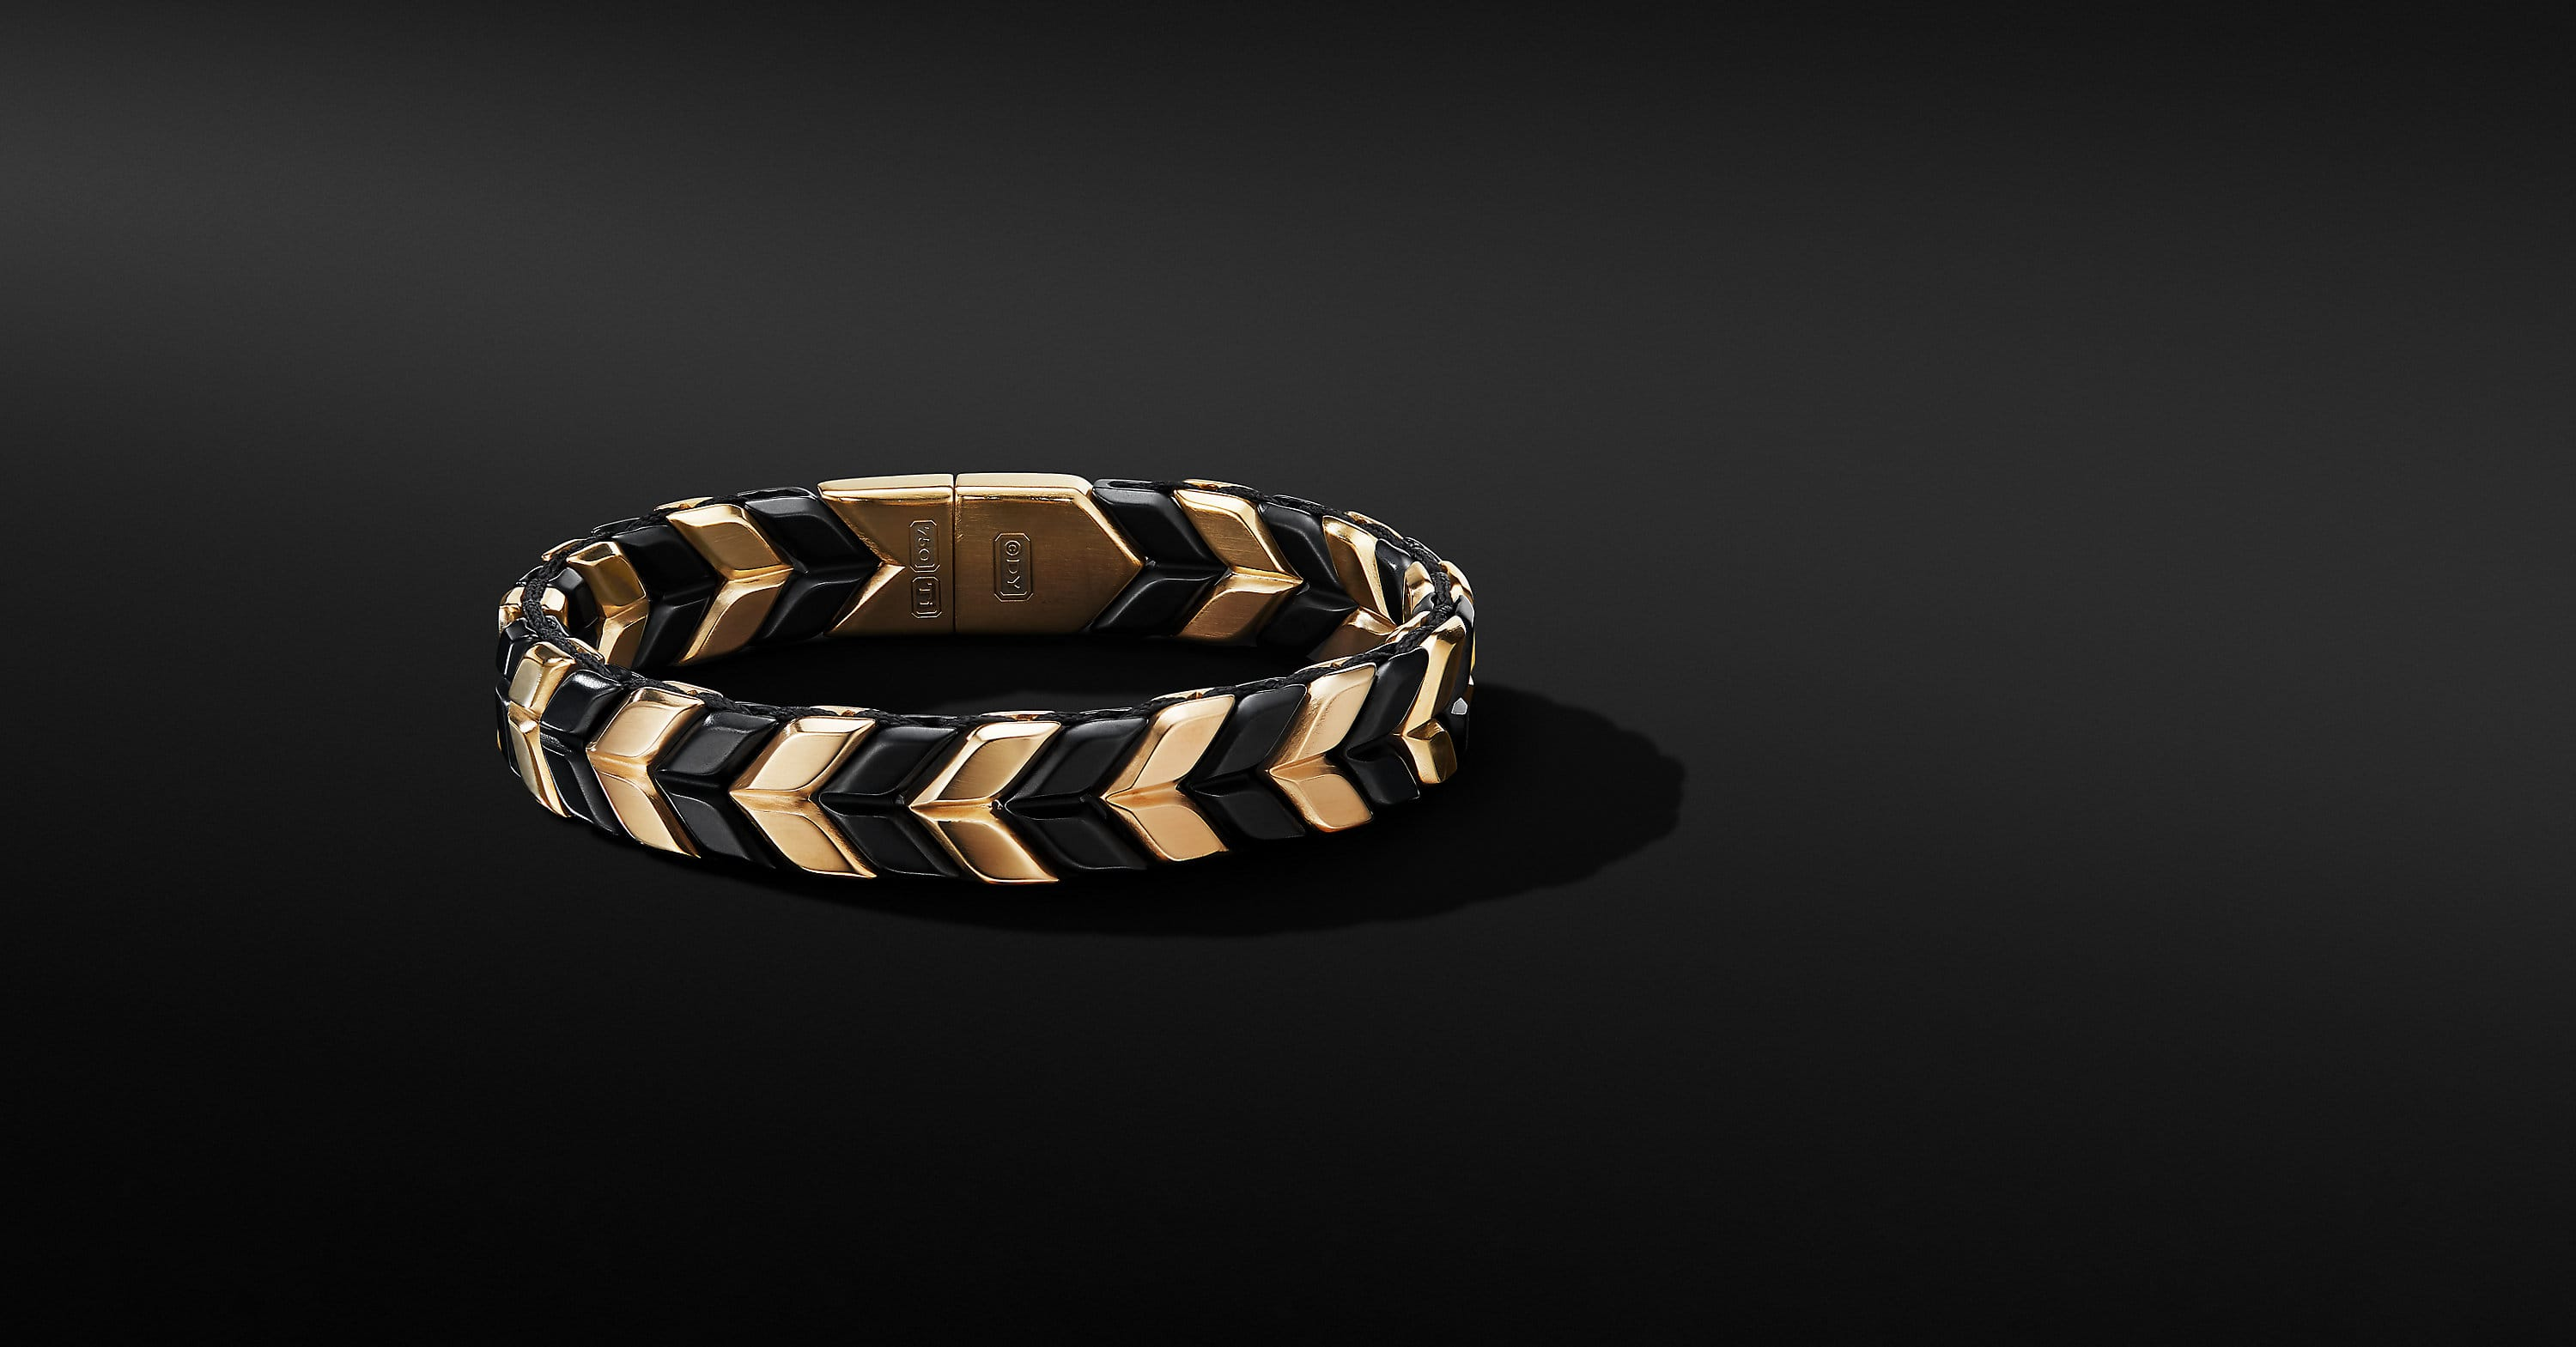 Chevron Woven Bracelet in Black Titanium with 18K Yellow Gold, 12mm